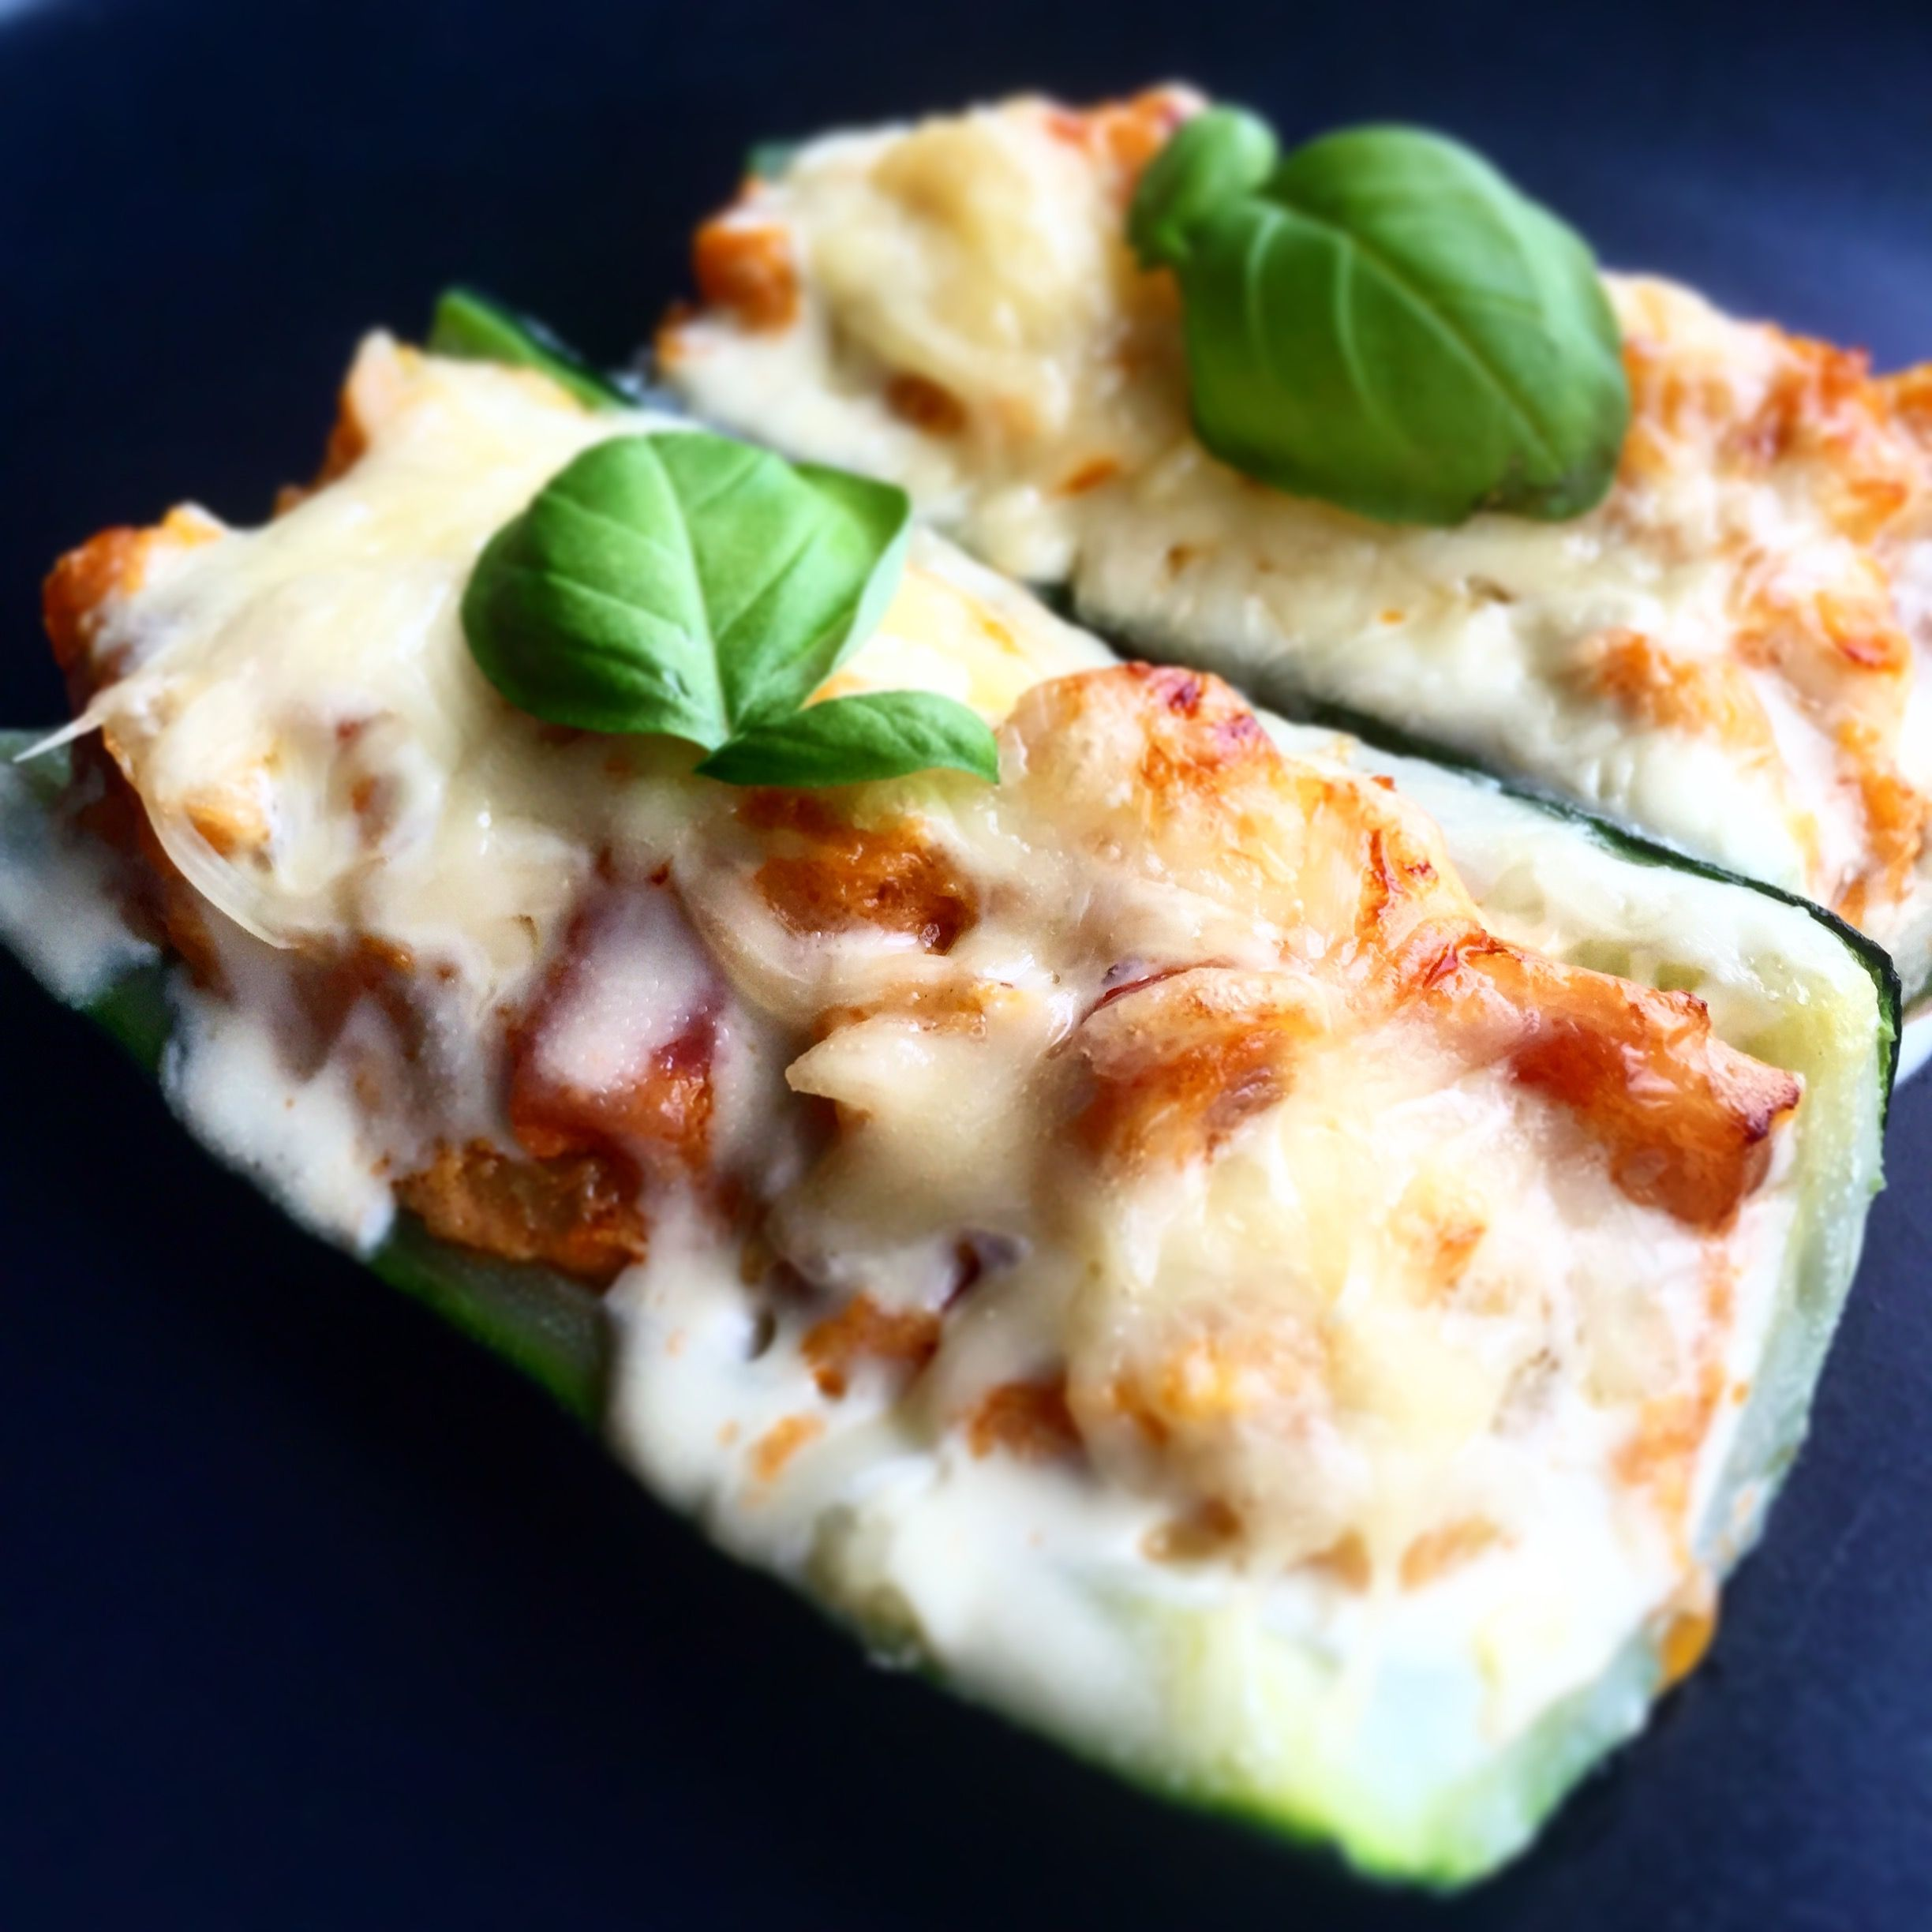 Stuffed courgette recipe typical and traditional from spain find stuffed courgette recipe typical and traditional from spain find the recipe on blog at ophius forumfinder Image collections